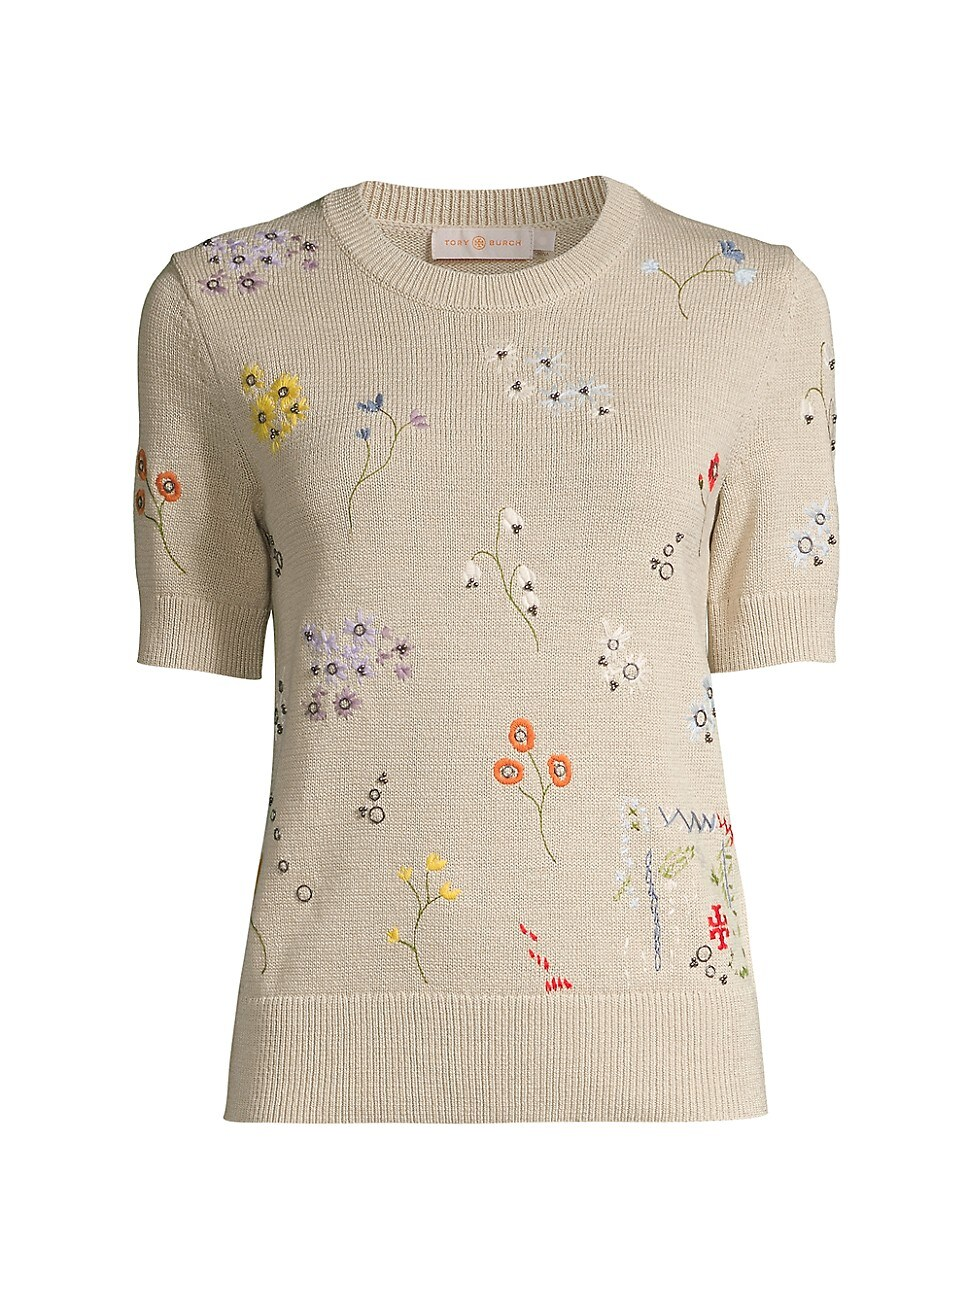 Tory Burch WOMEN'S FLORAL-EMBROIDERED KNIT T-SHIRT